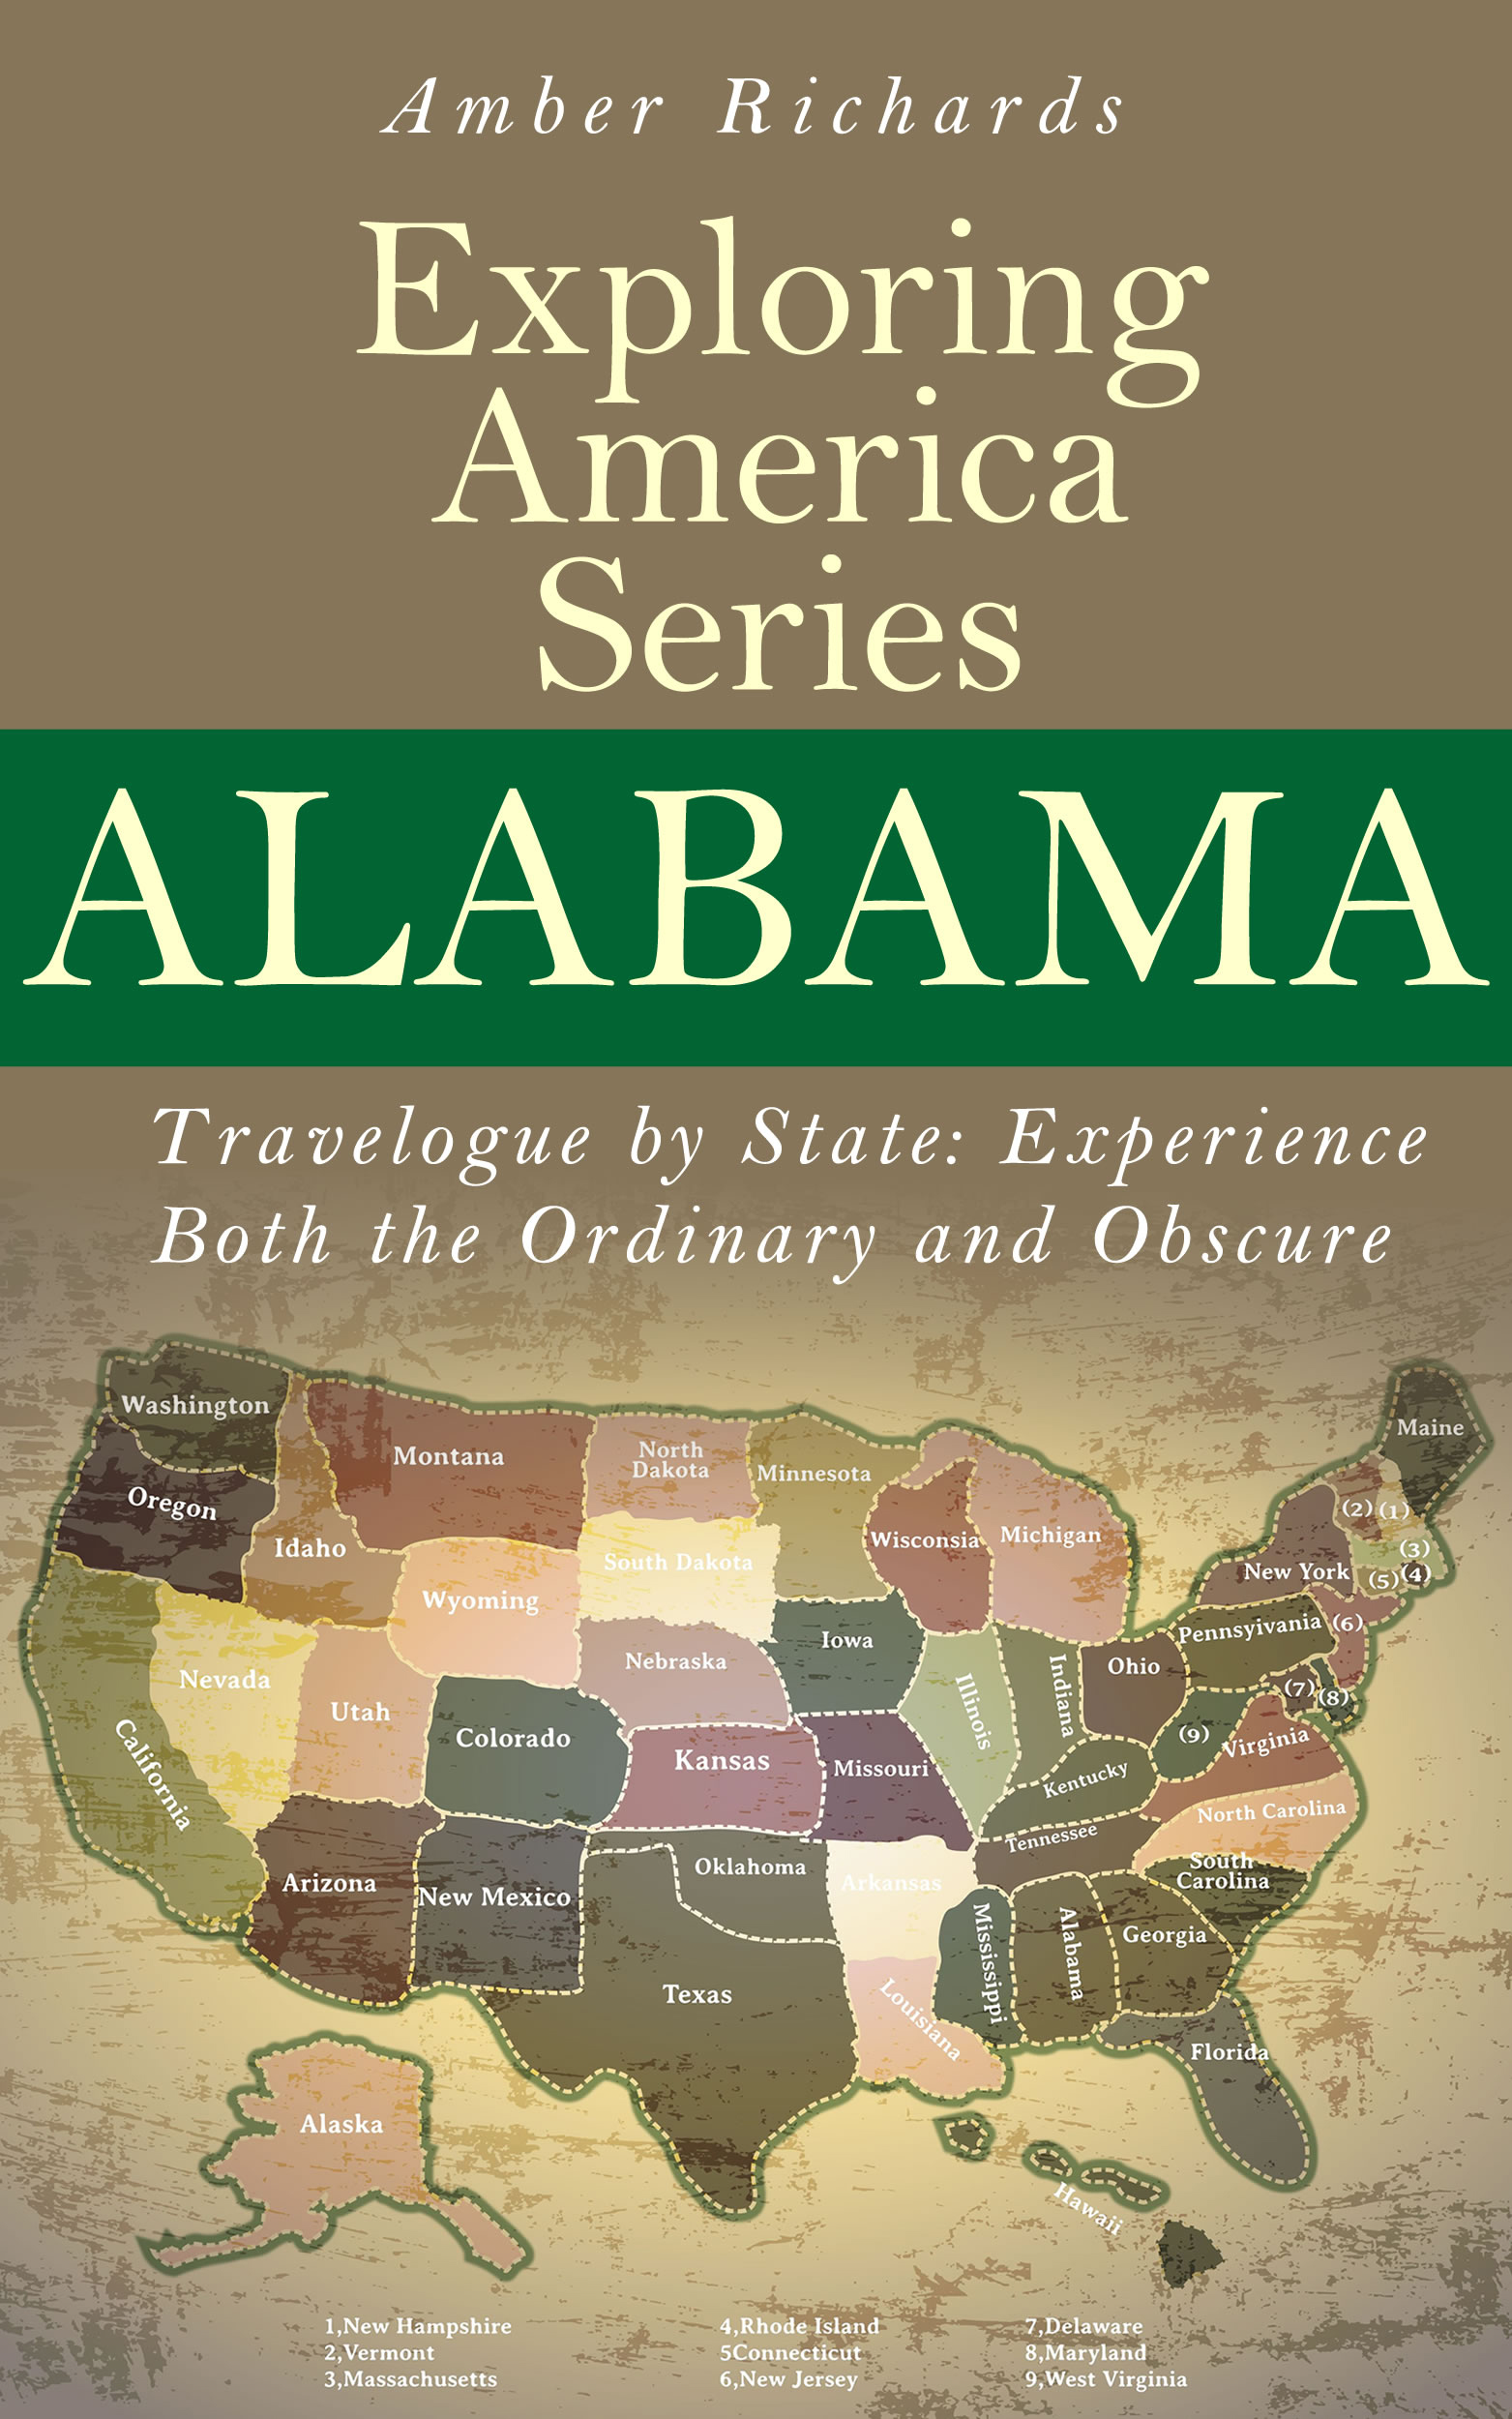 Alabama - travelogue by state: experience both the ordinary and obscure